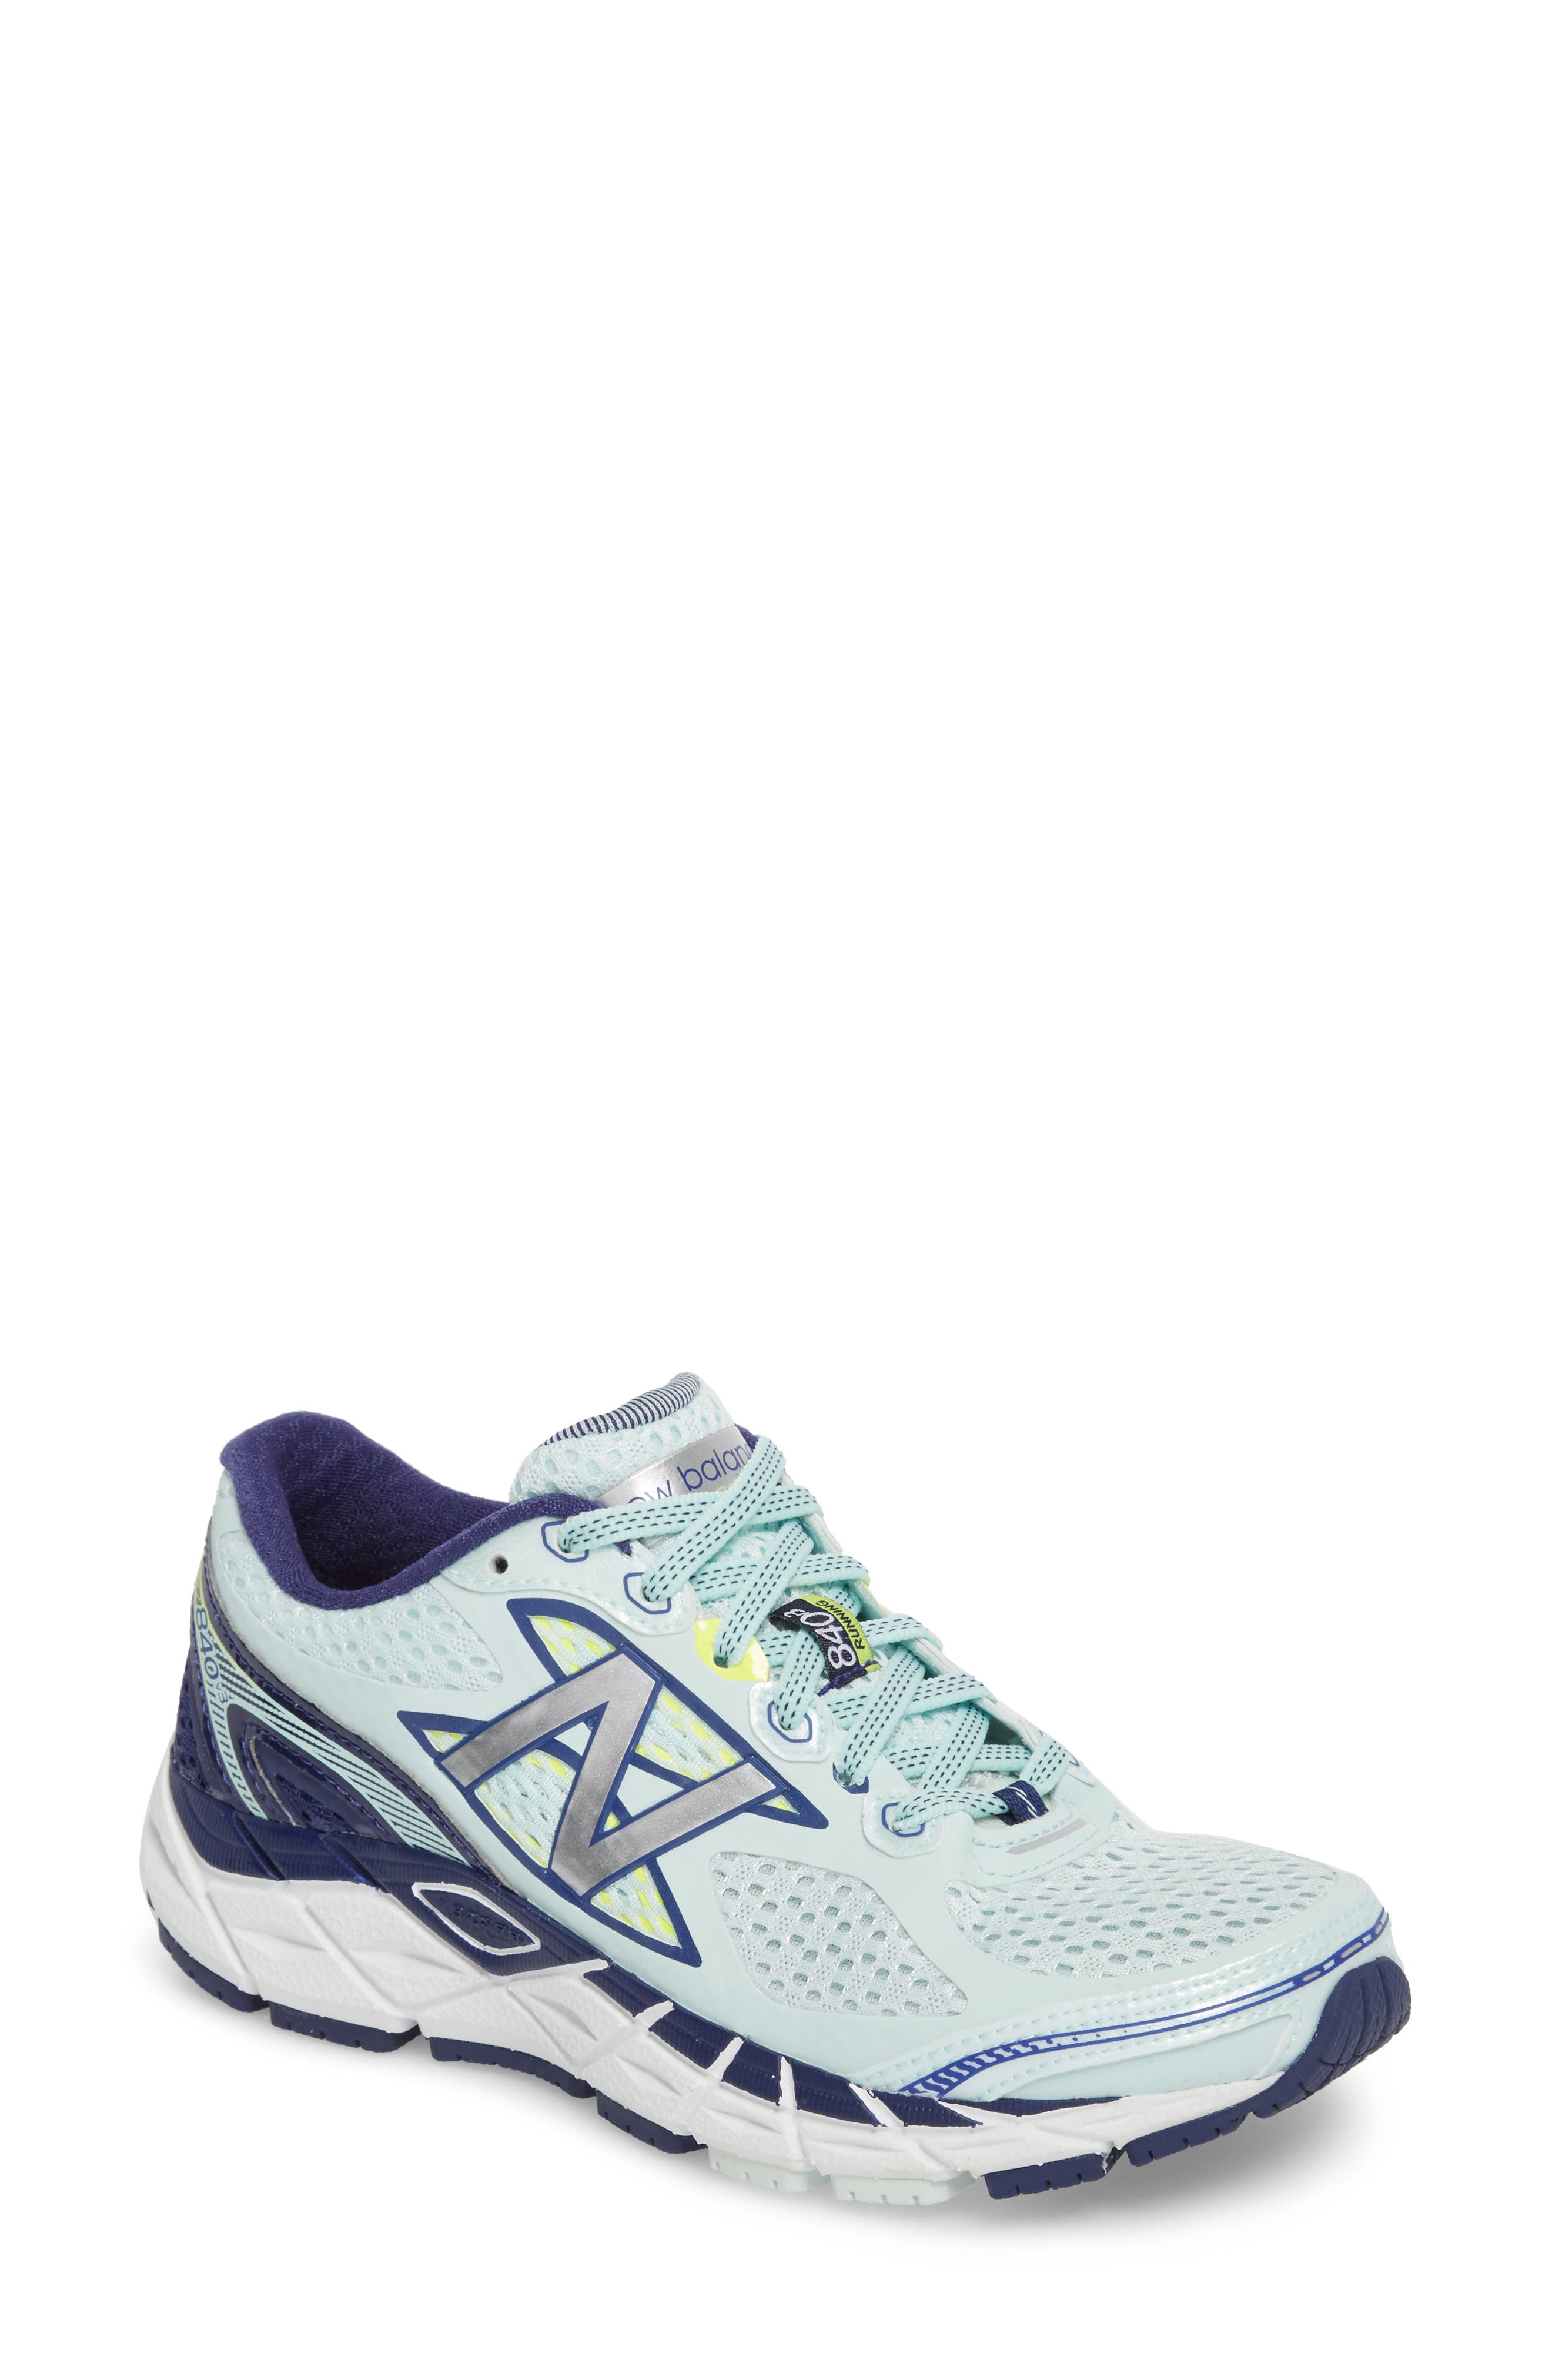 womens white new balance sneakers